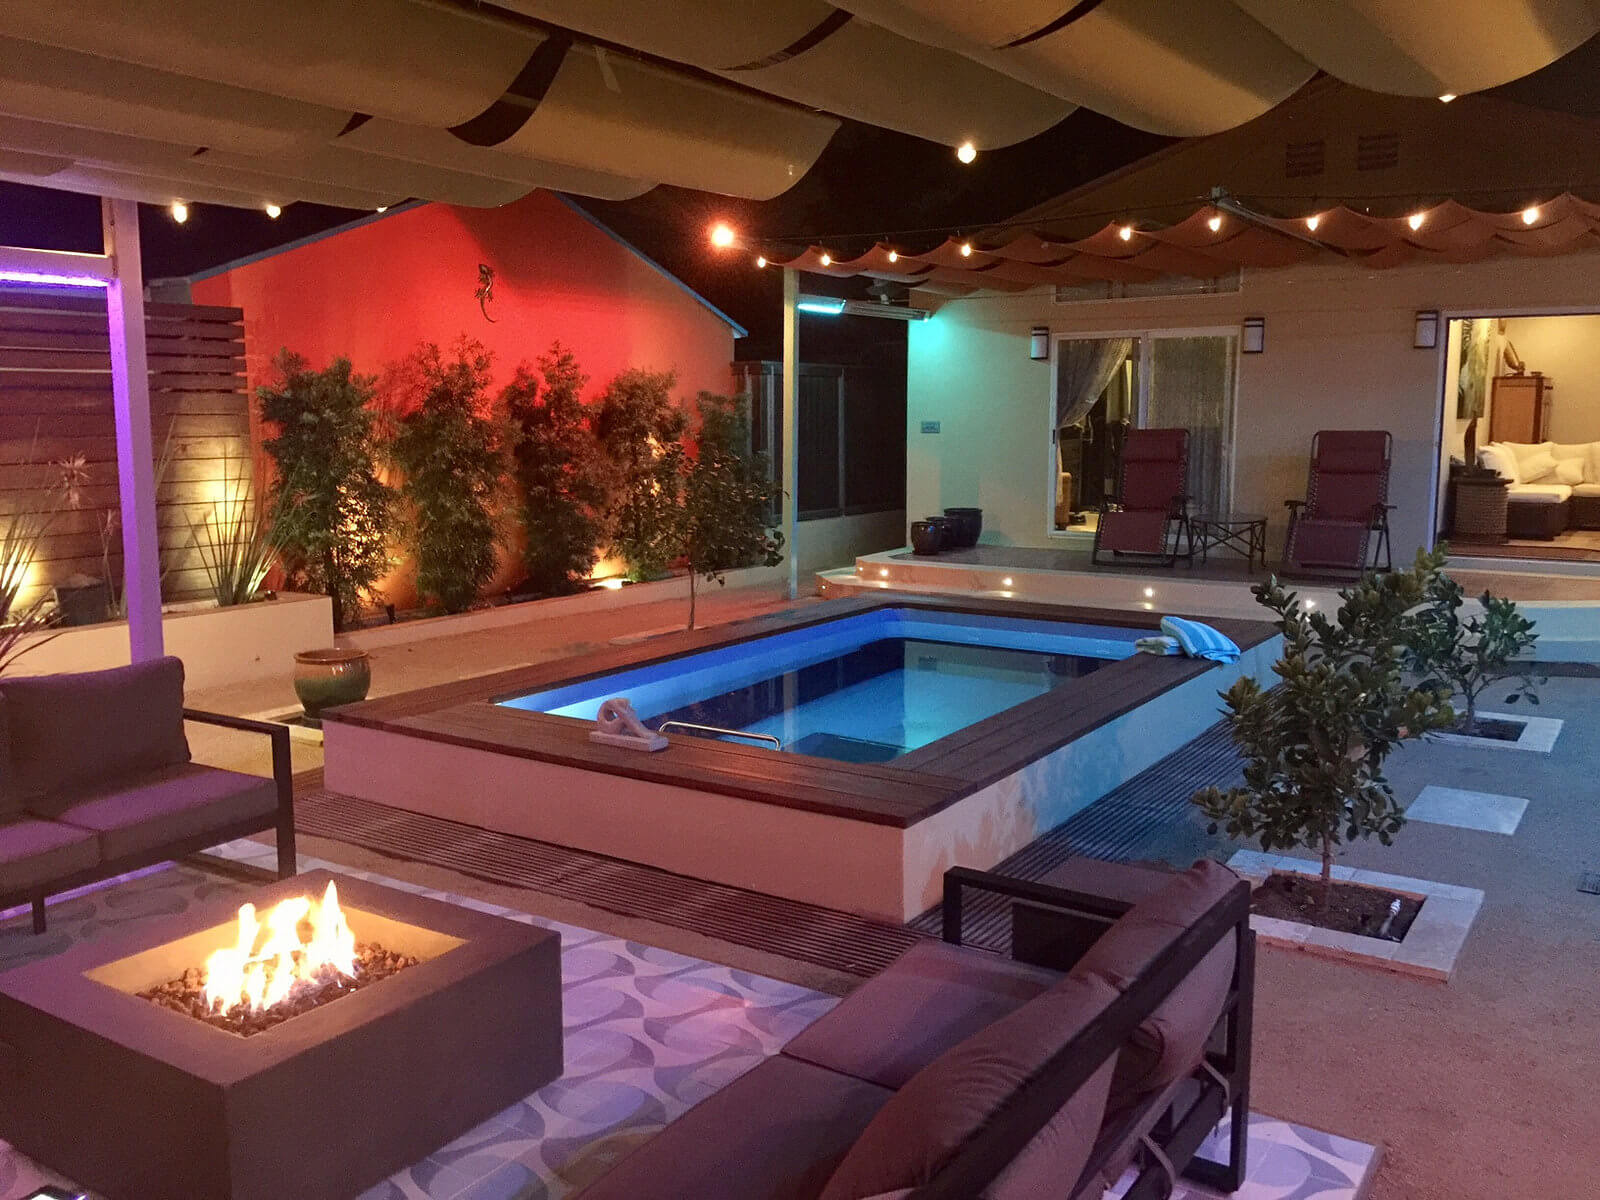 partially in-ground Original Endless Pool with a firepit and decorative lighting